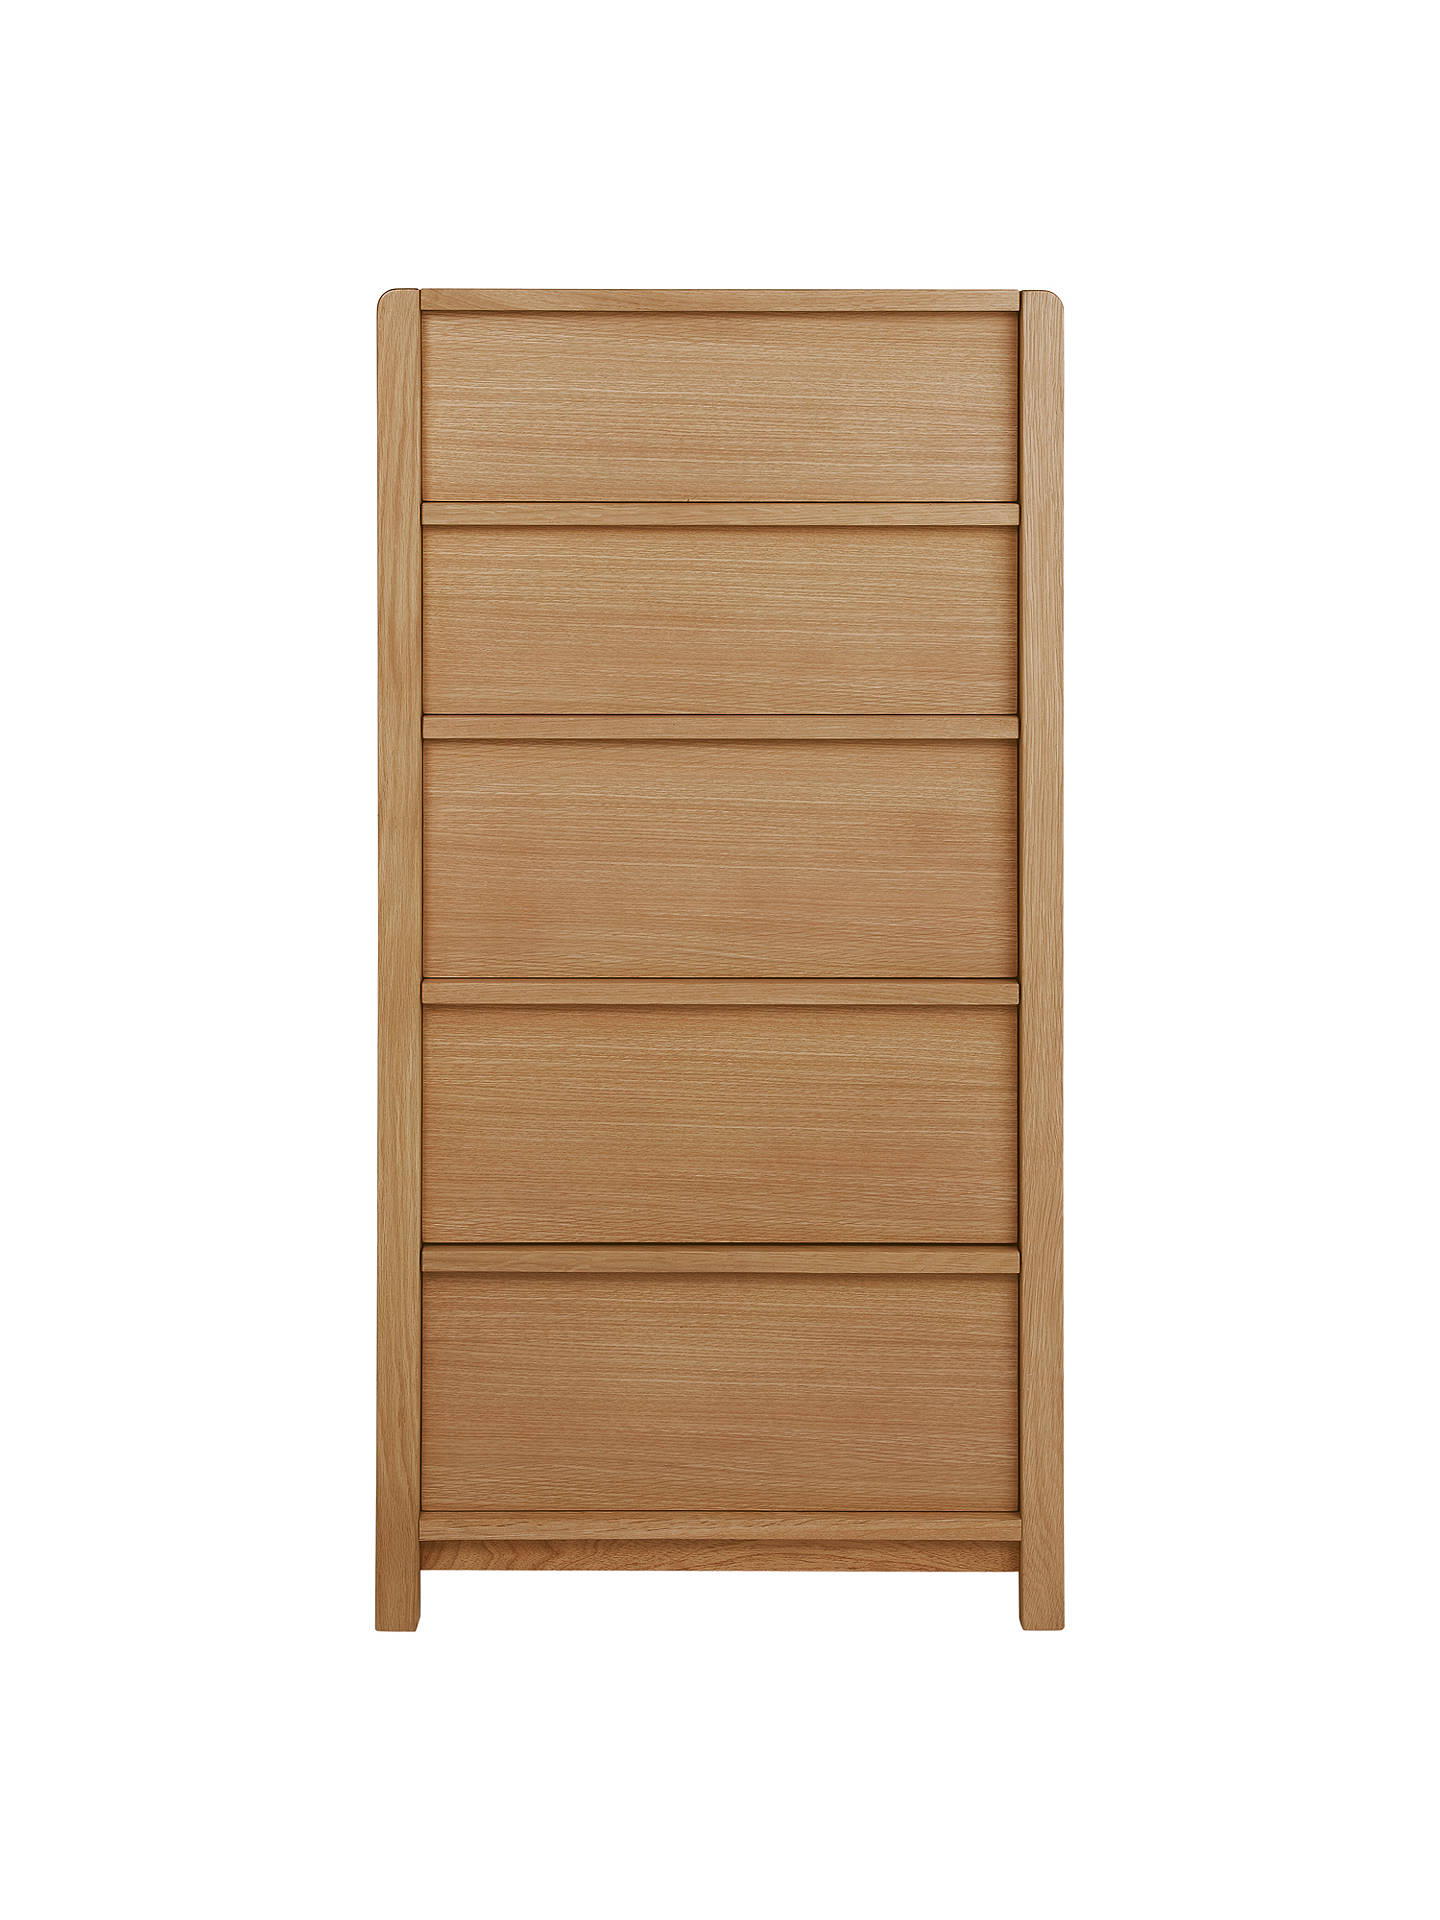 BuyJohn Lewis & Partners Montreal Tall 5 Drawer Chest, Oak Online at johnlewis.com